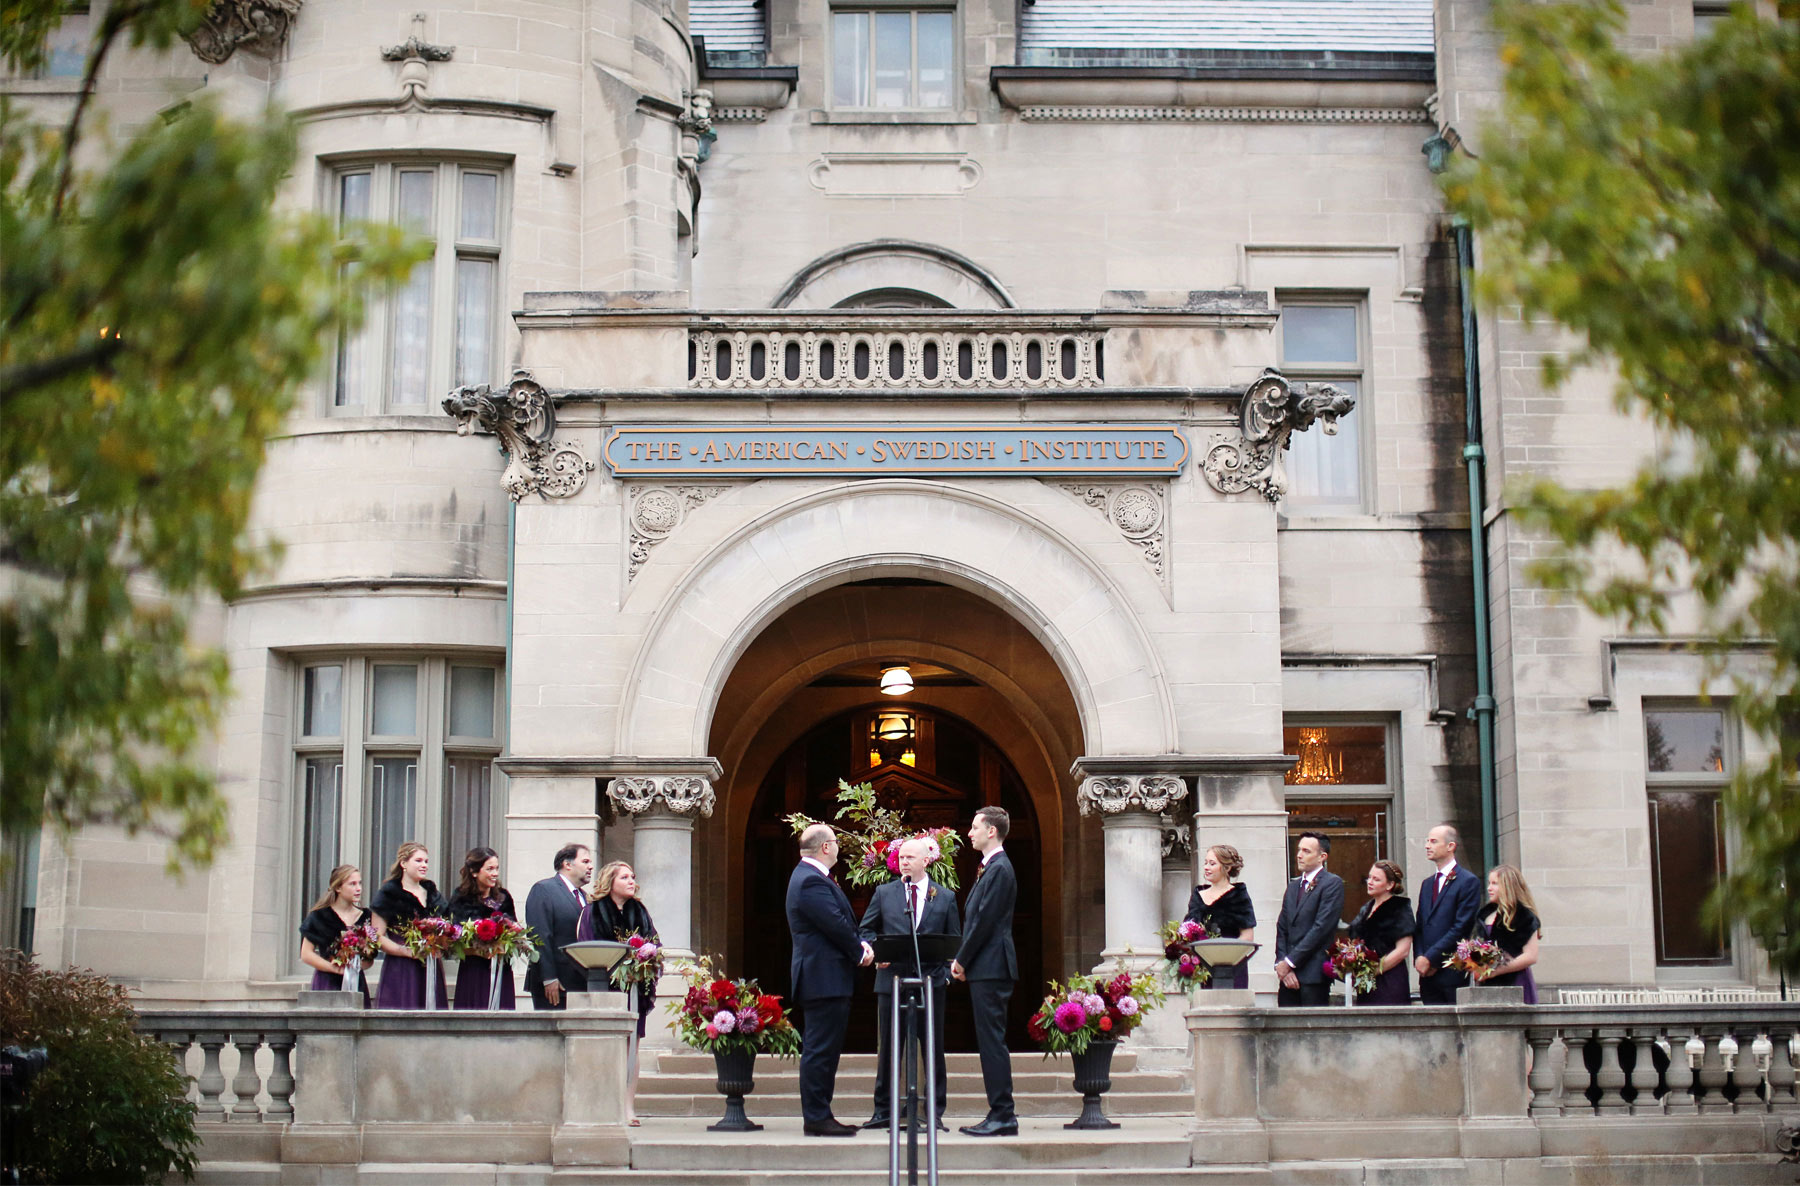 12-Minneapolis-Minnesota-Wedding-Photographer-by-Andrew-Vick-Photography-Fall-Autumn-American-Swedish-Institute-Ceremony-Groom-Groomsmen-Bridesmaids-Vows-Ben-and-Adam.jpg